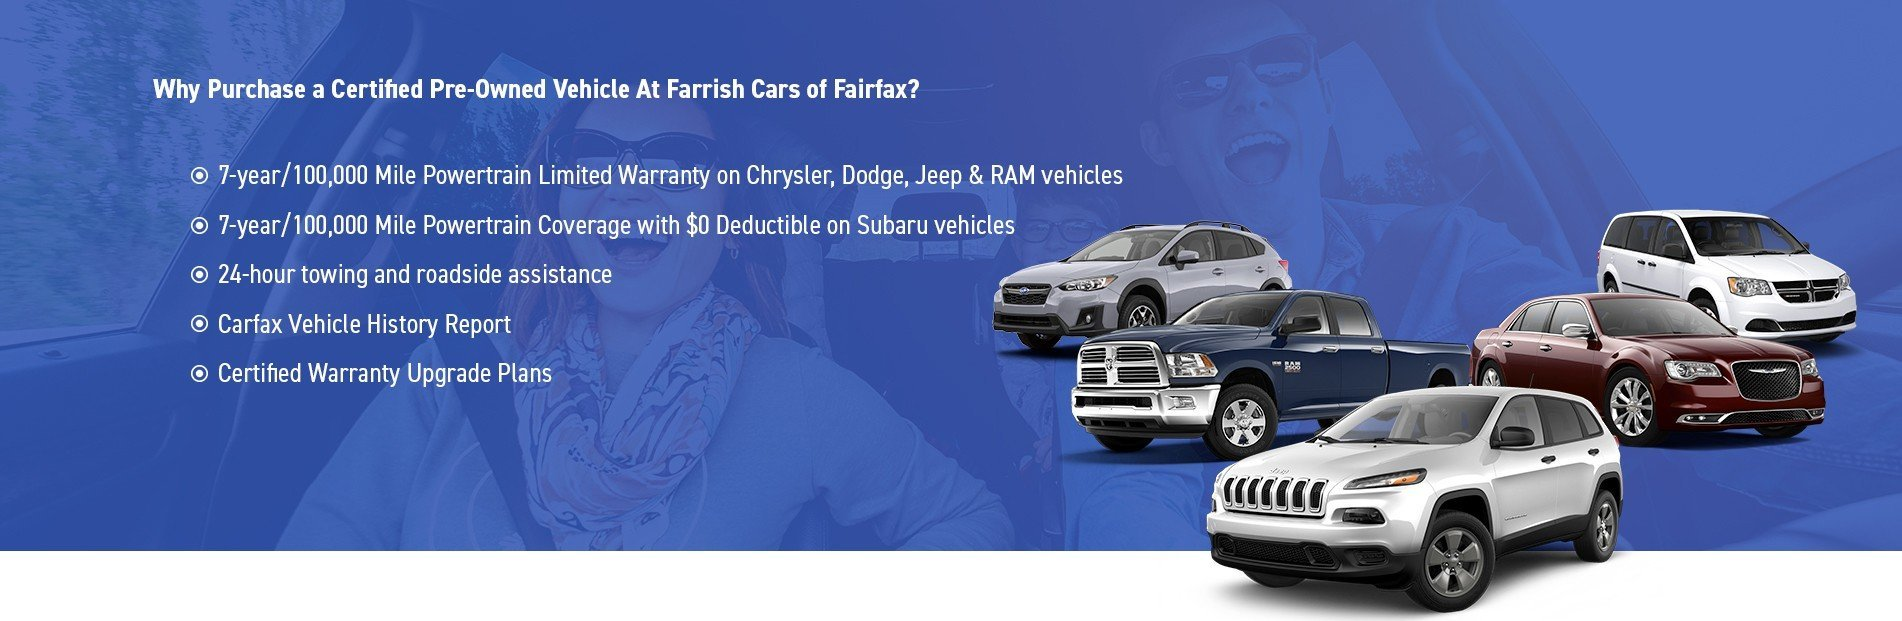 Why Purchase a Certified Pre-Owned Vehicle At Farrish Cars of Fairfax?